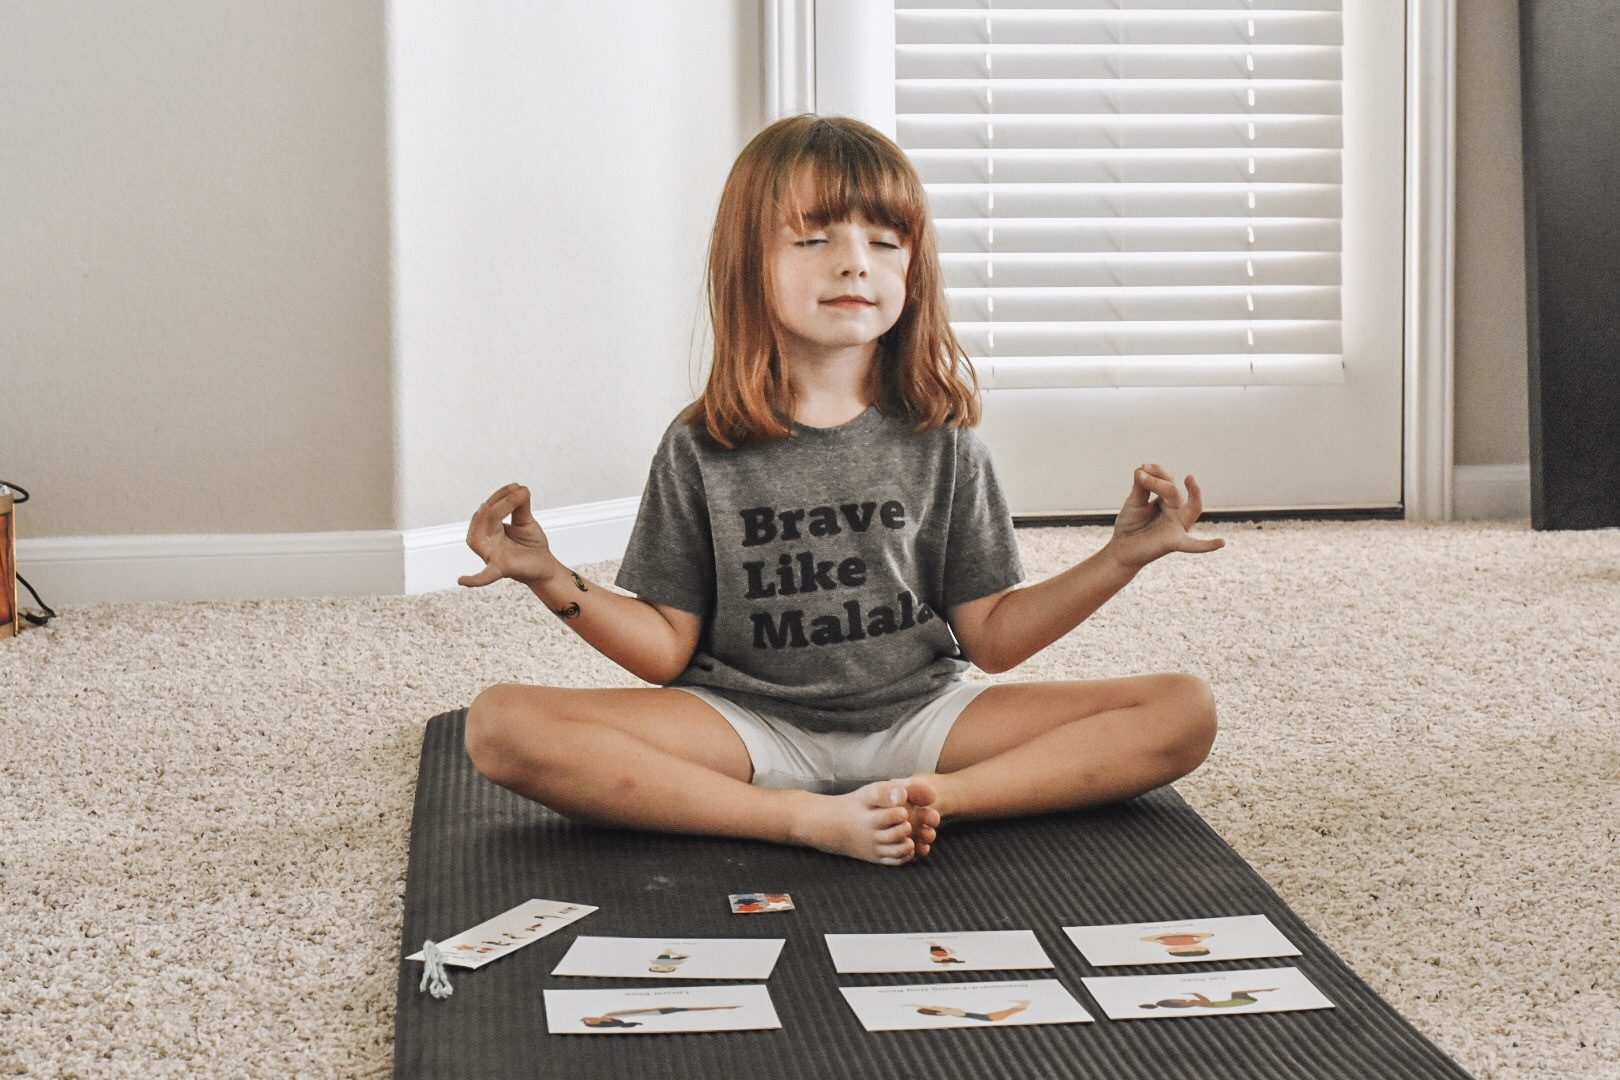 science subscription box for kids, yoga poses